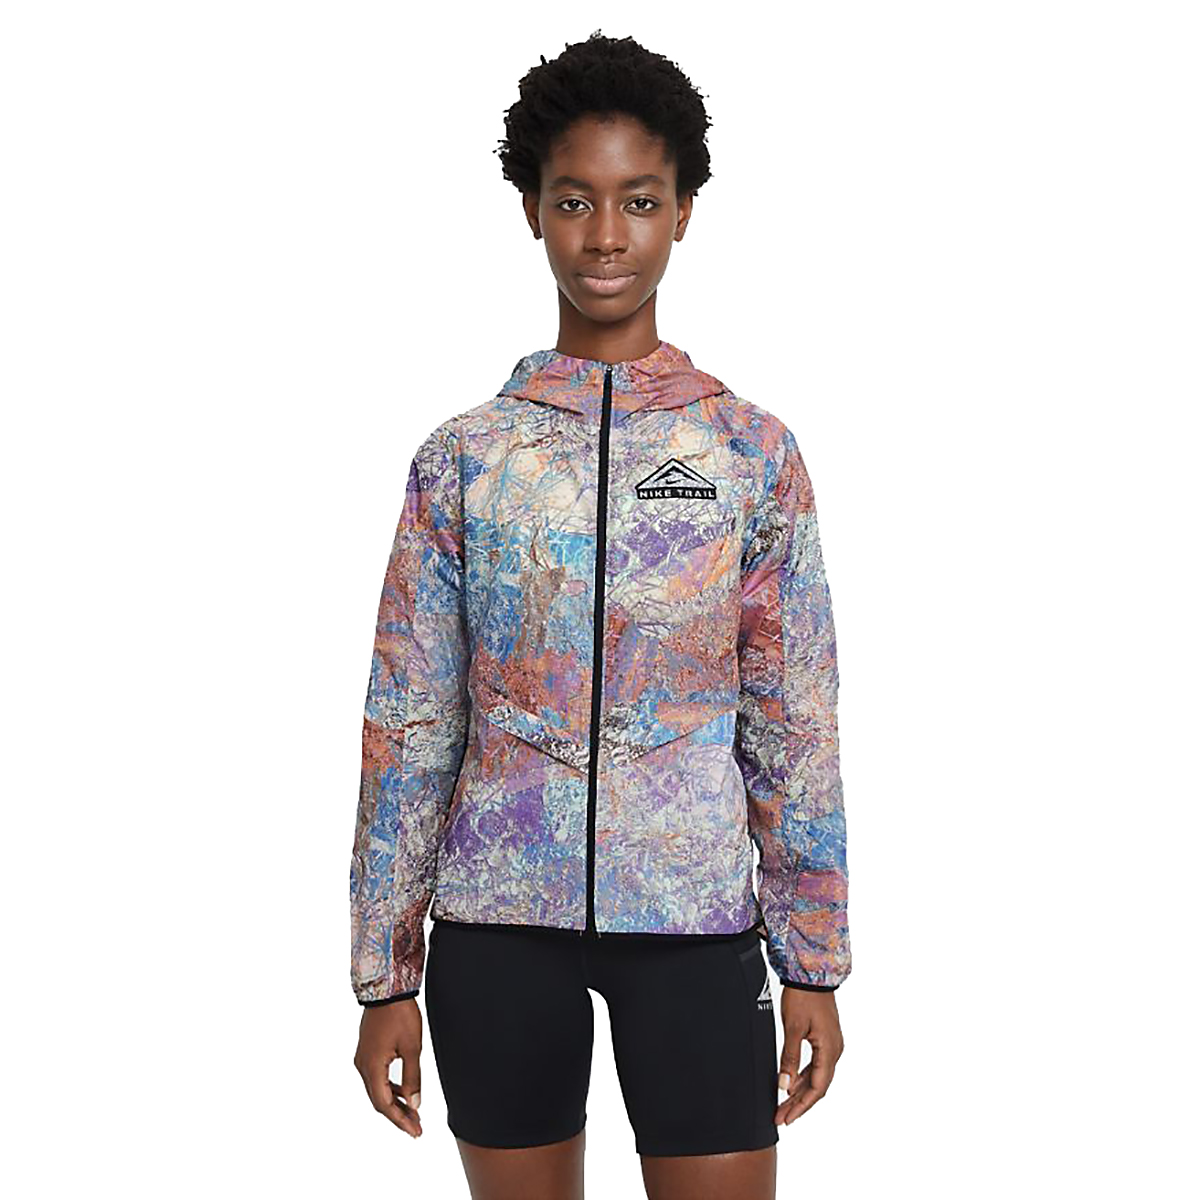 Women's Nike Windrunner Packable Trail Running Jacket - Color: Blue Lagoon/Black/Reflective Silver - Size: XS, Blue Lagoon/Black/Reflective Silver, large, image 1